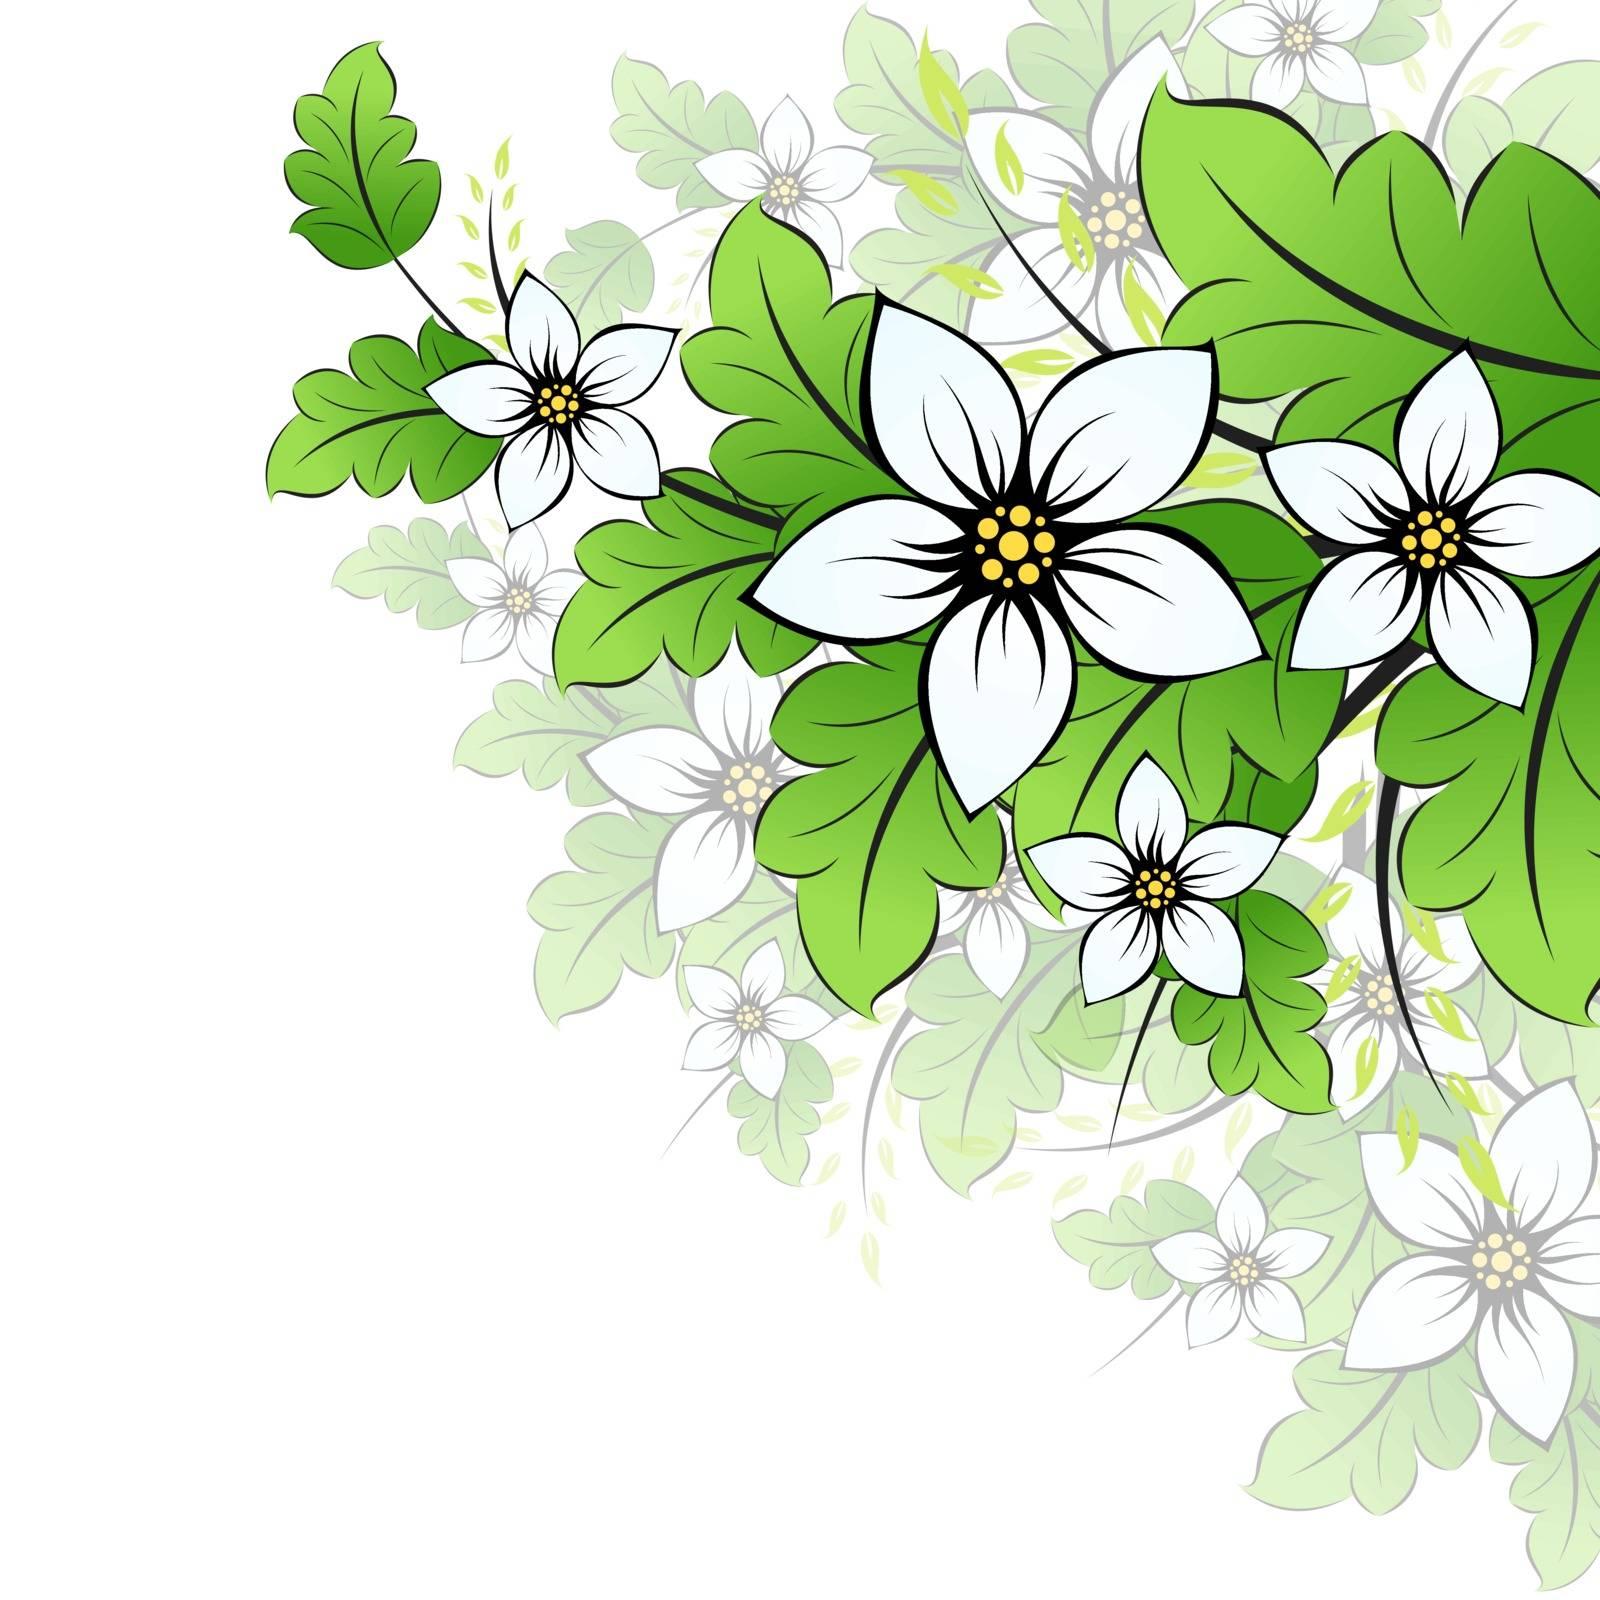 Isolated Florals. Leaves and Flowers